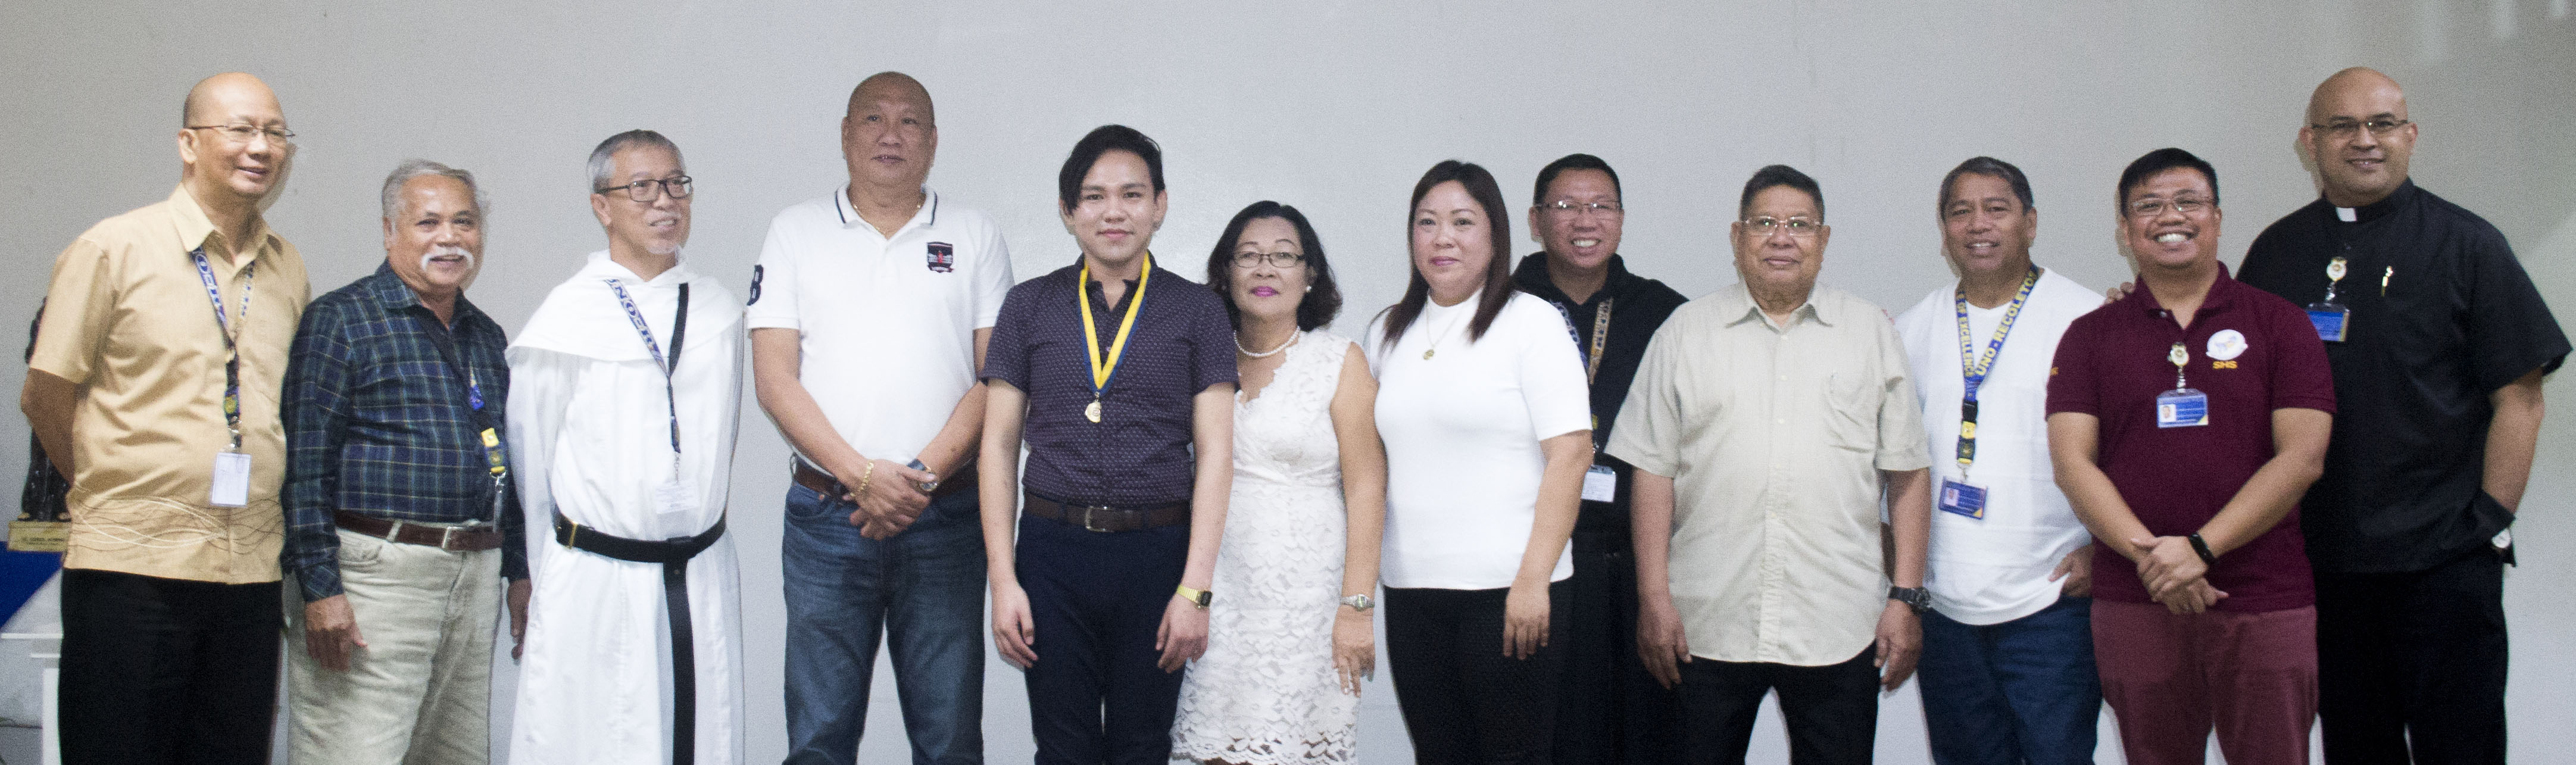 UNO-R RECOGNIZES CAMHS ALUMNUS